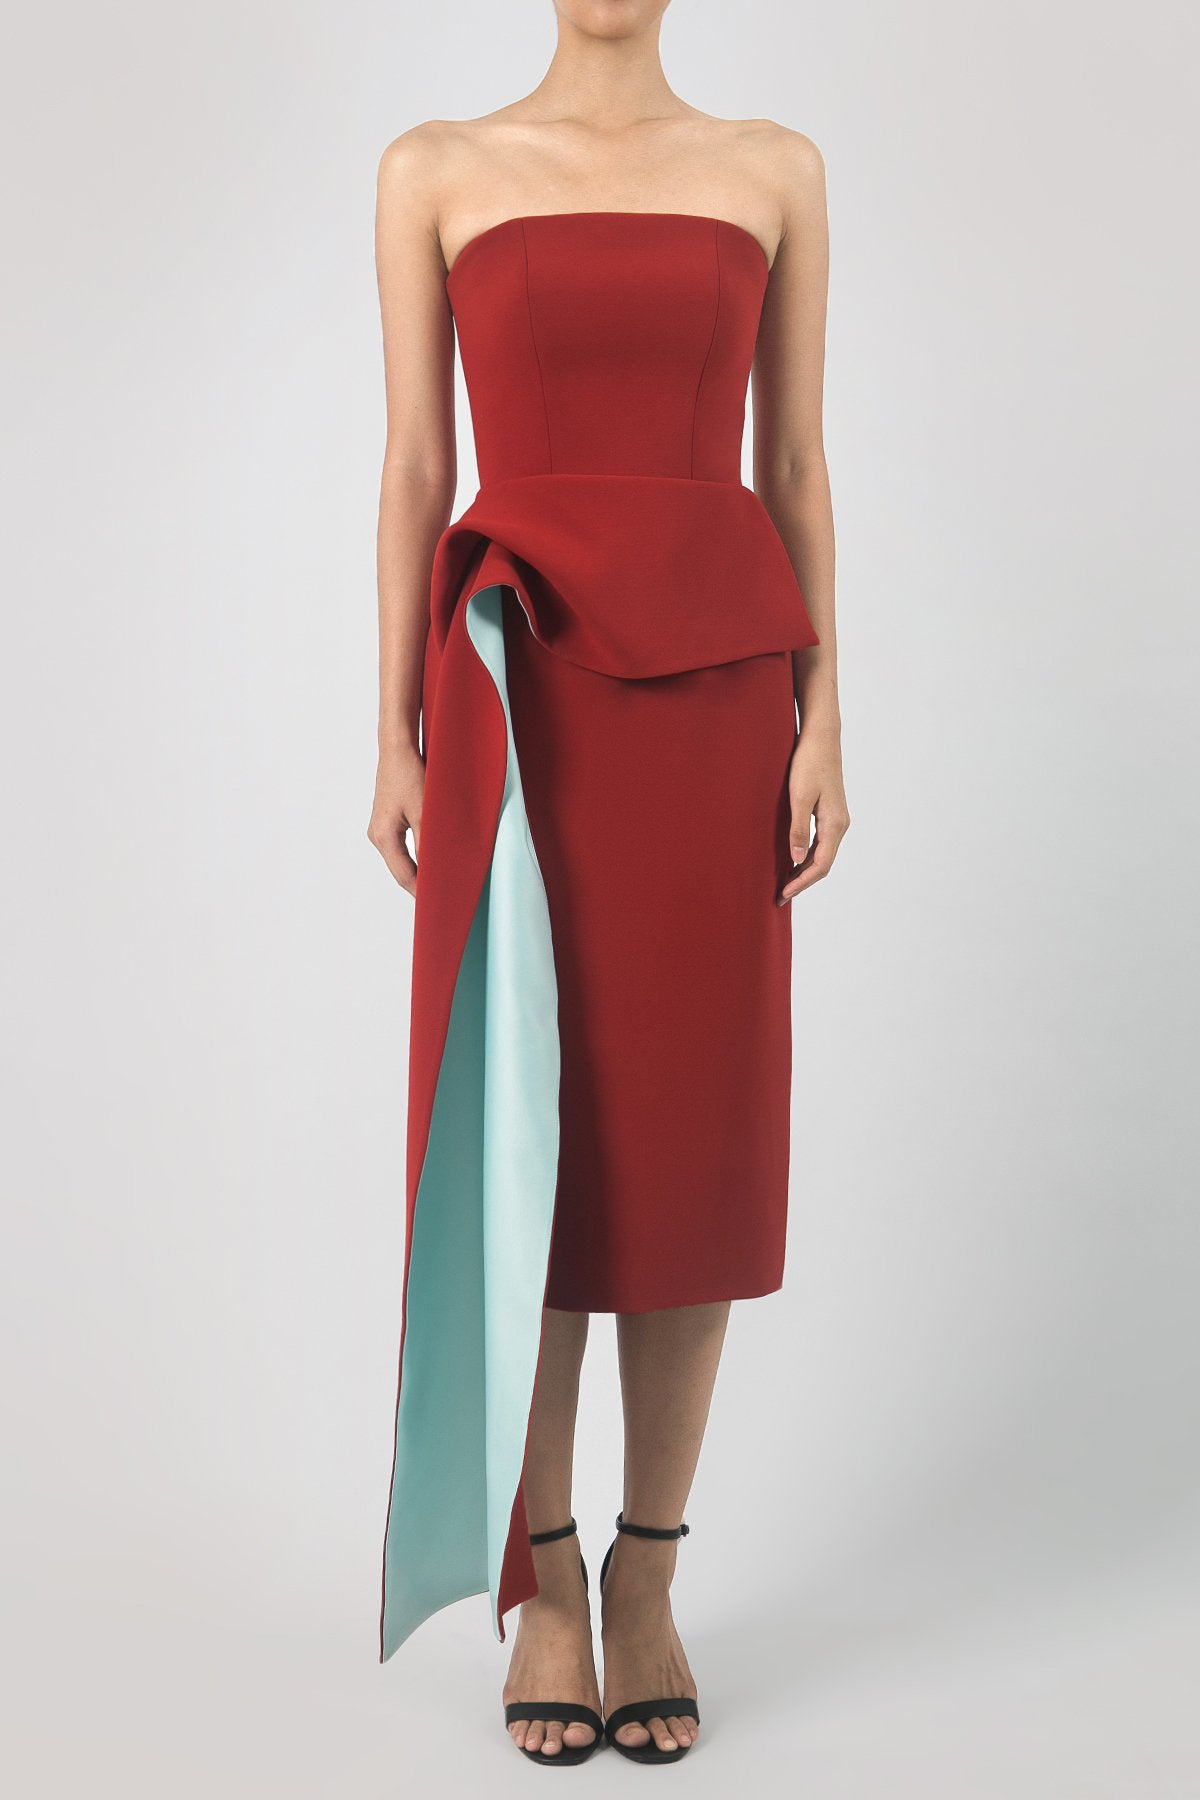 Terracotta Red Million Dress